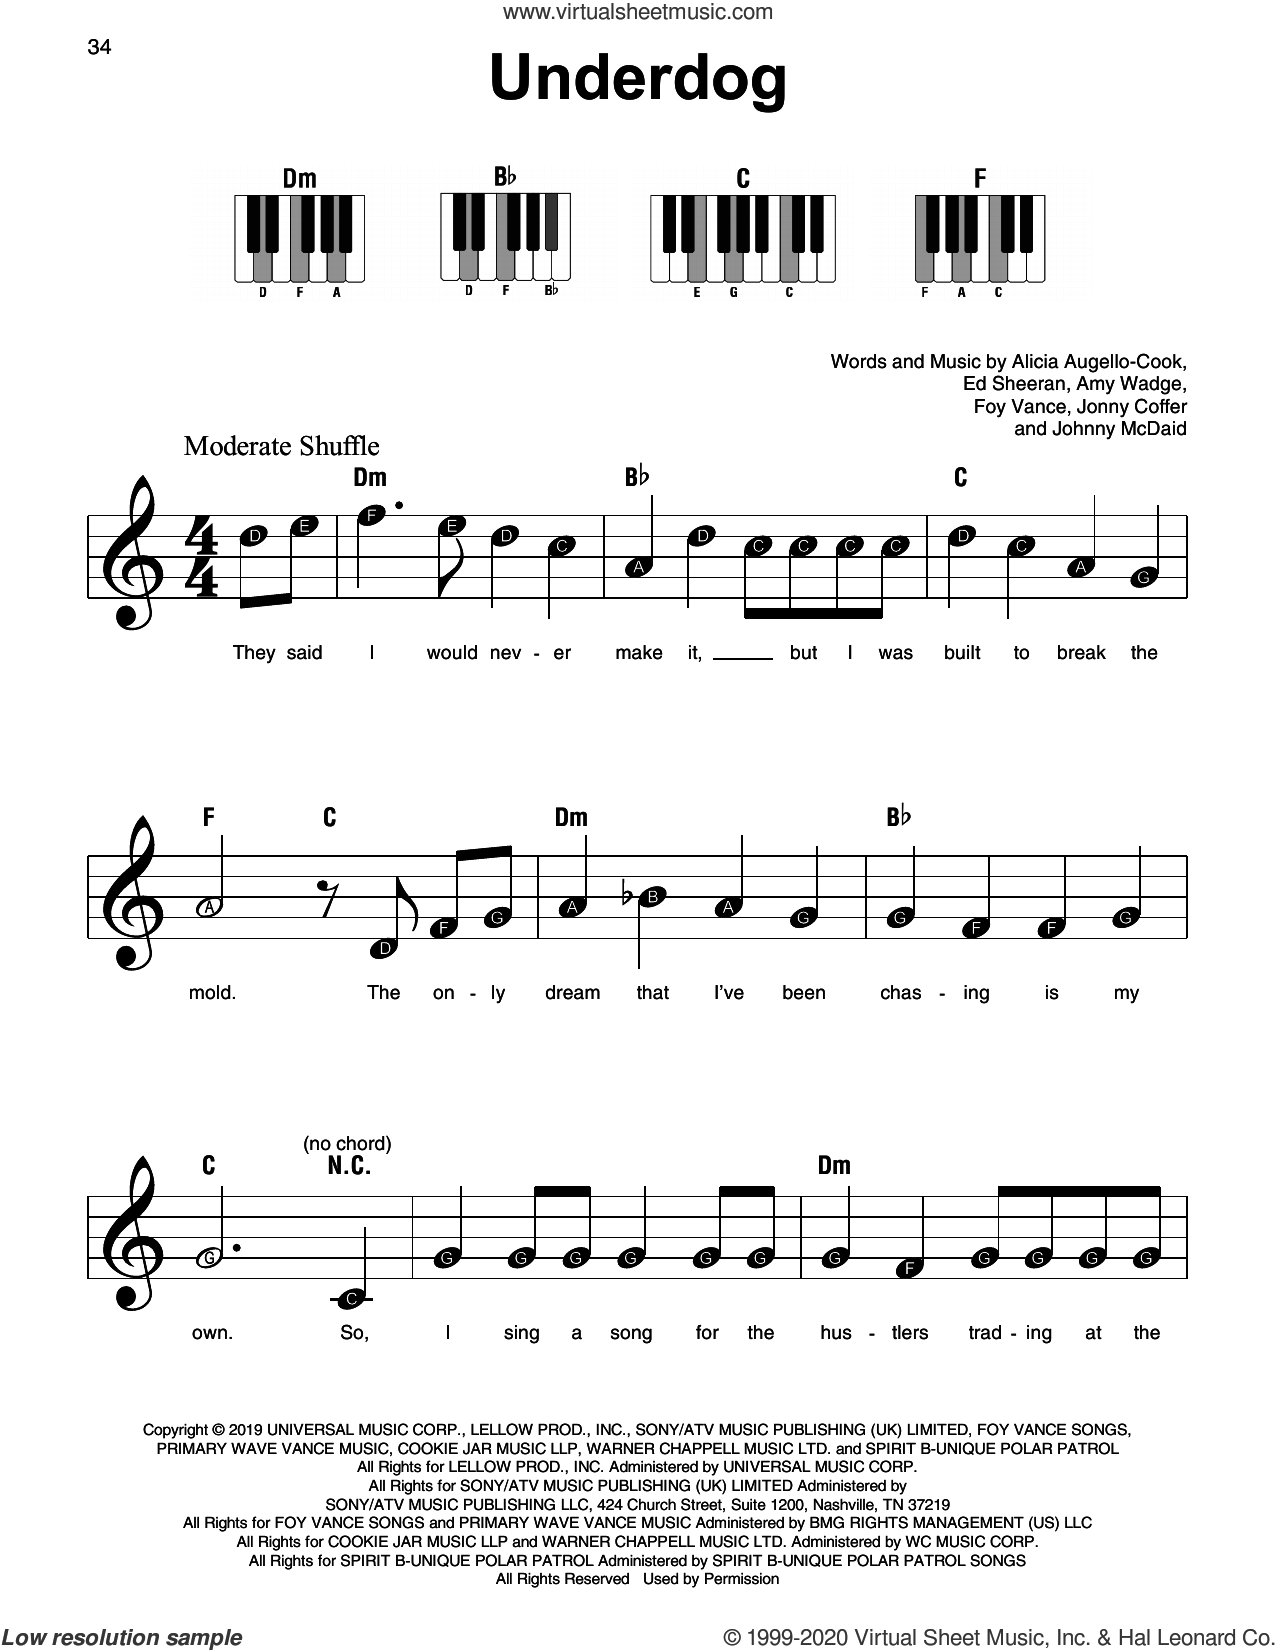 Underdog sheet music for piano solo by Alicia Keys, Alicia Augello-Cook, Amy Wadge, Ed Sheeran, Foy Vance, Johnny McDaid and Jonny Coffer, beginner skill level